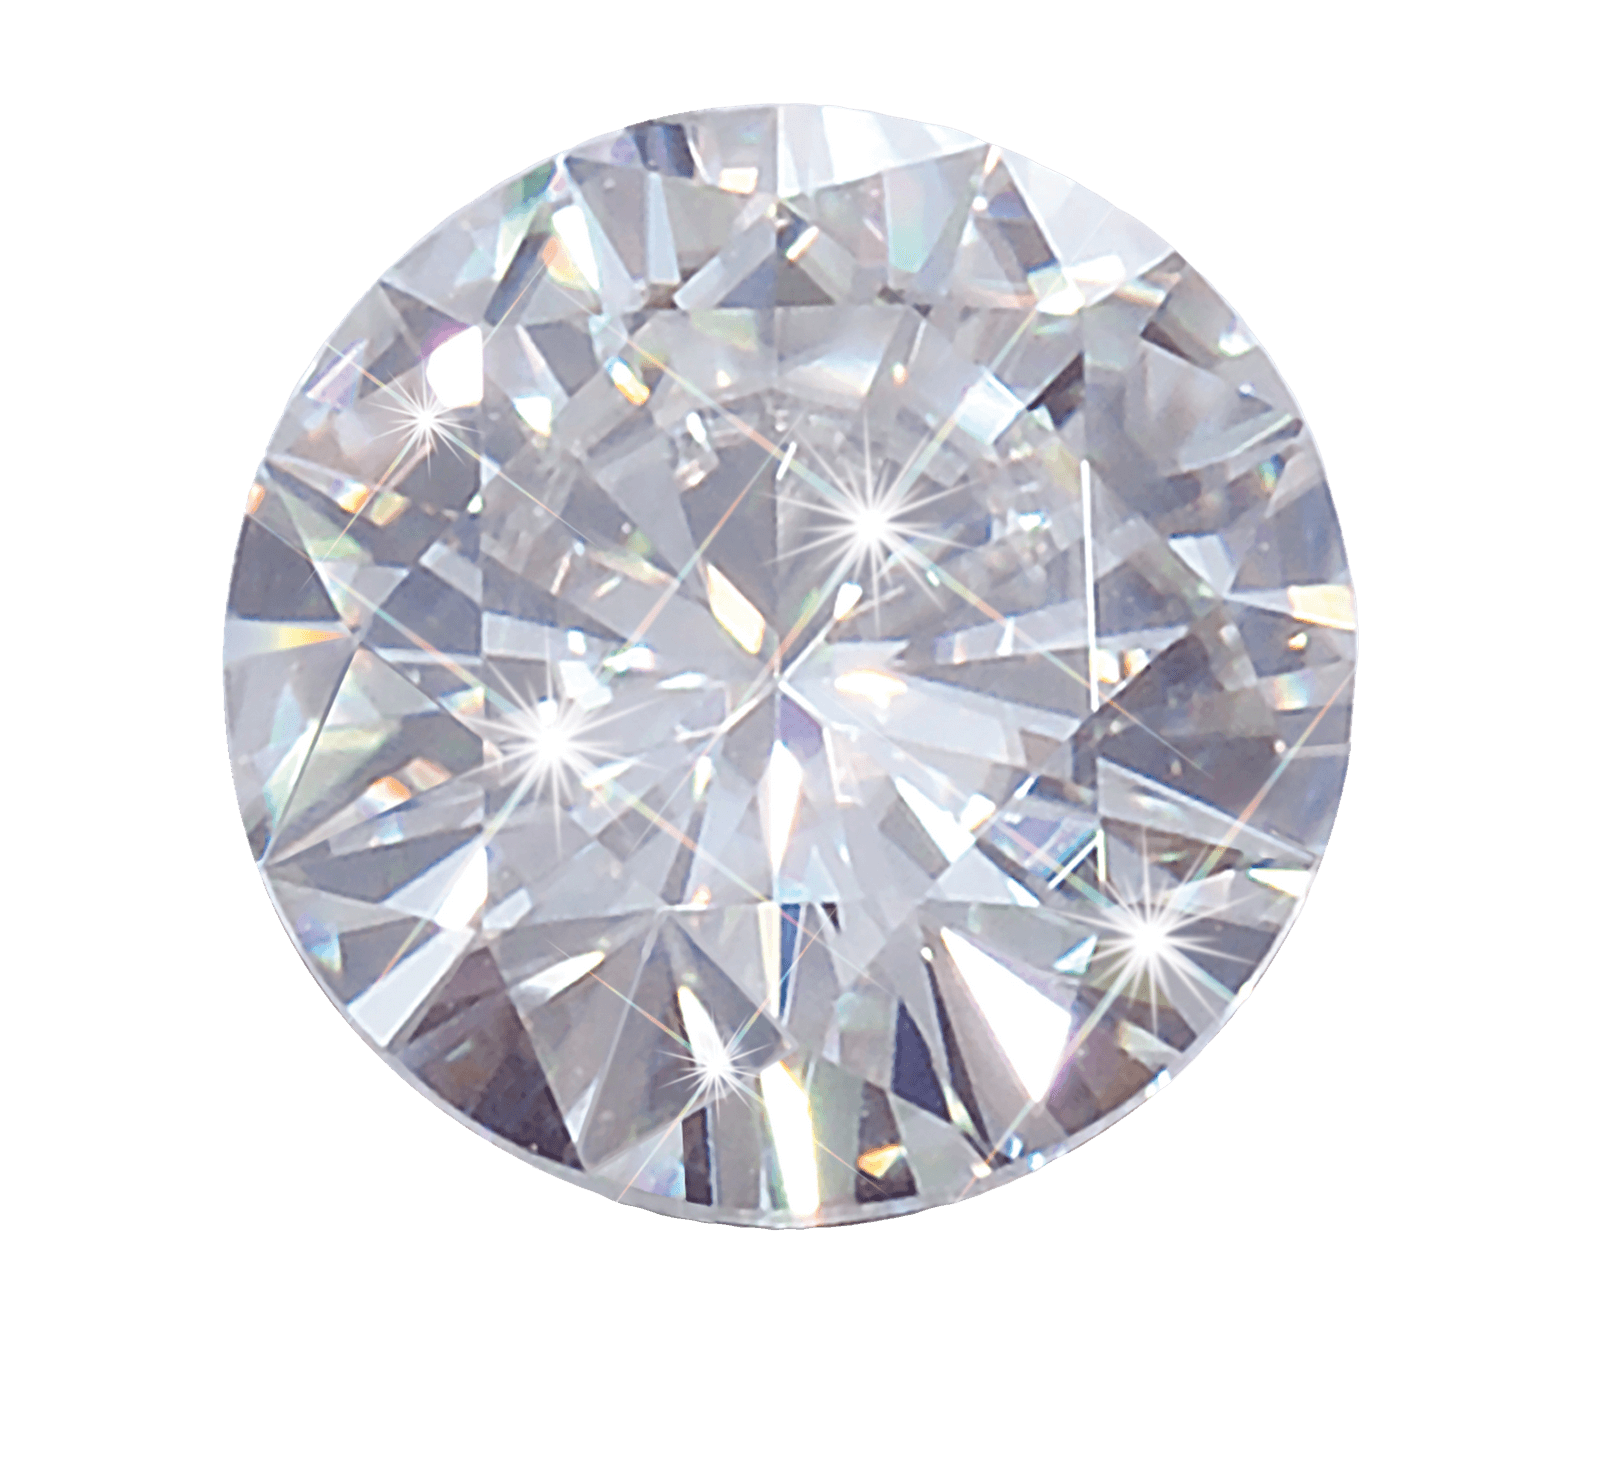 Round white diamond png. Crystal clipart transparent background